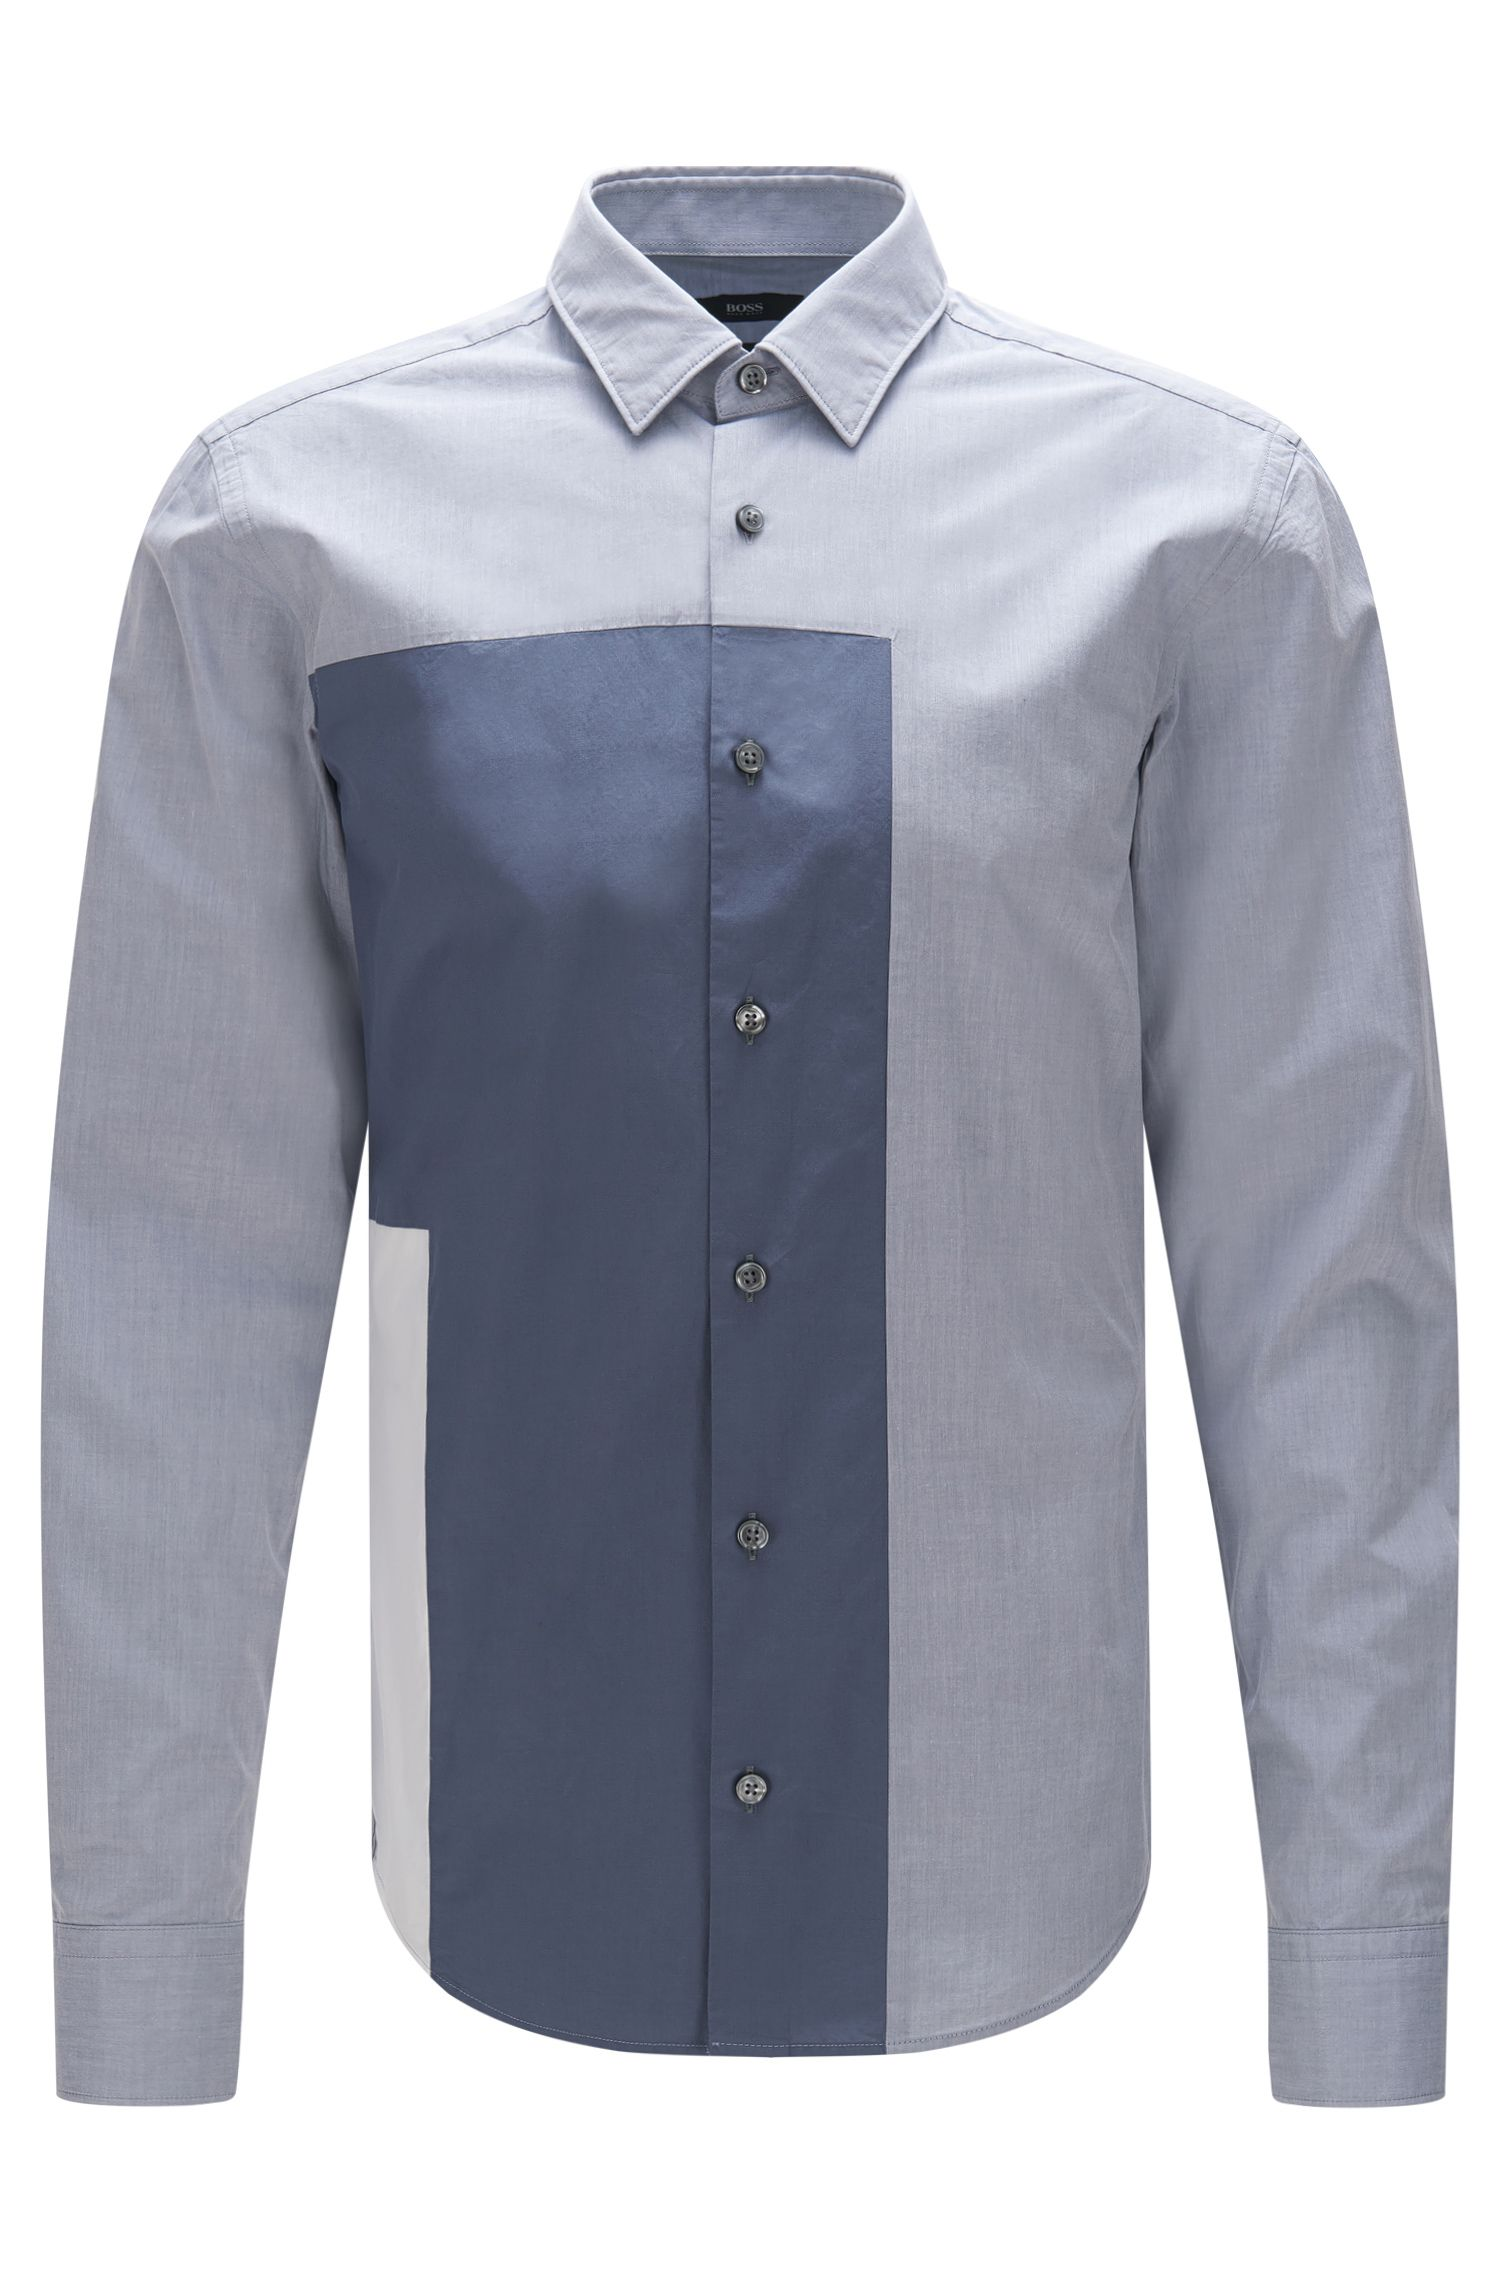 'Rodolph' | Slim Fit, Cotton Button Down Shirt